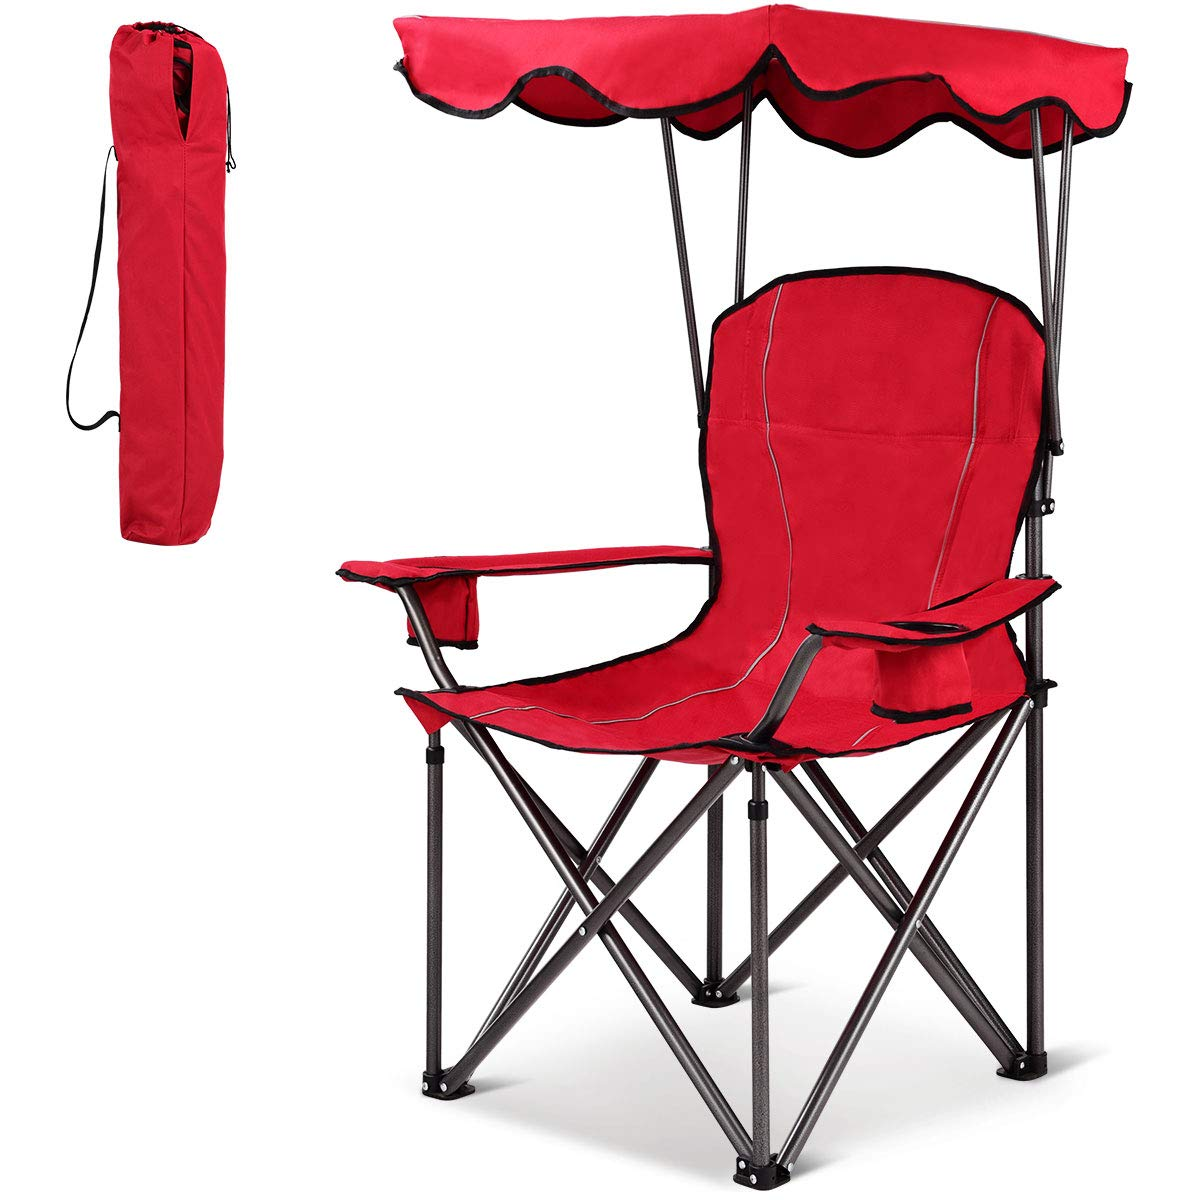 GYMAX Canopy Chair, Portable Folding Beach Chair Picnic Chair with Canopy Two Cup Holders and Carry Bag, for Outdoor Beach Camp Park Patio